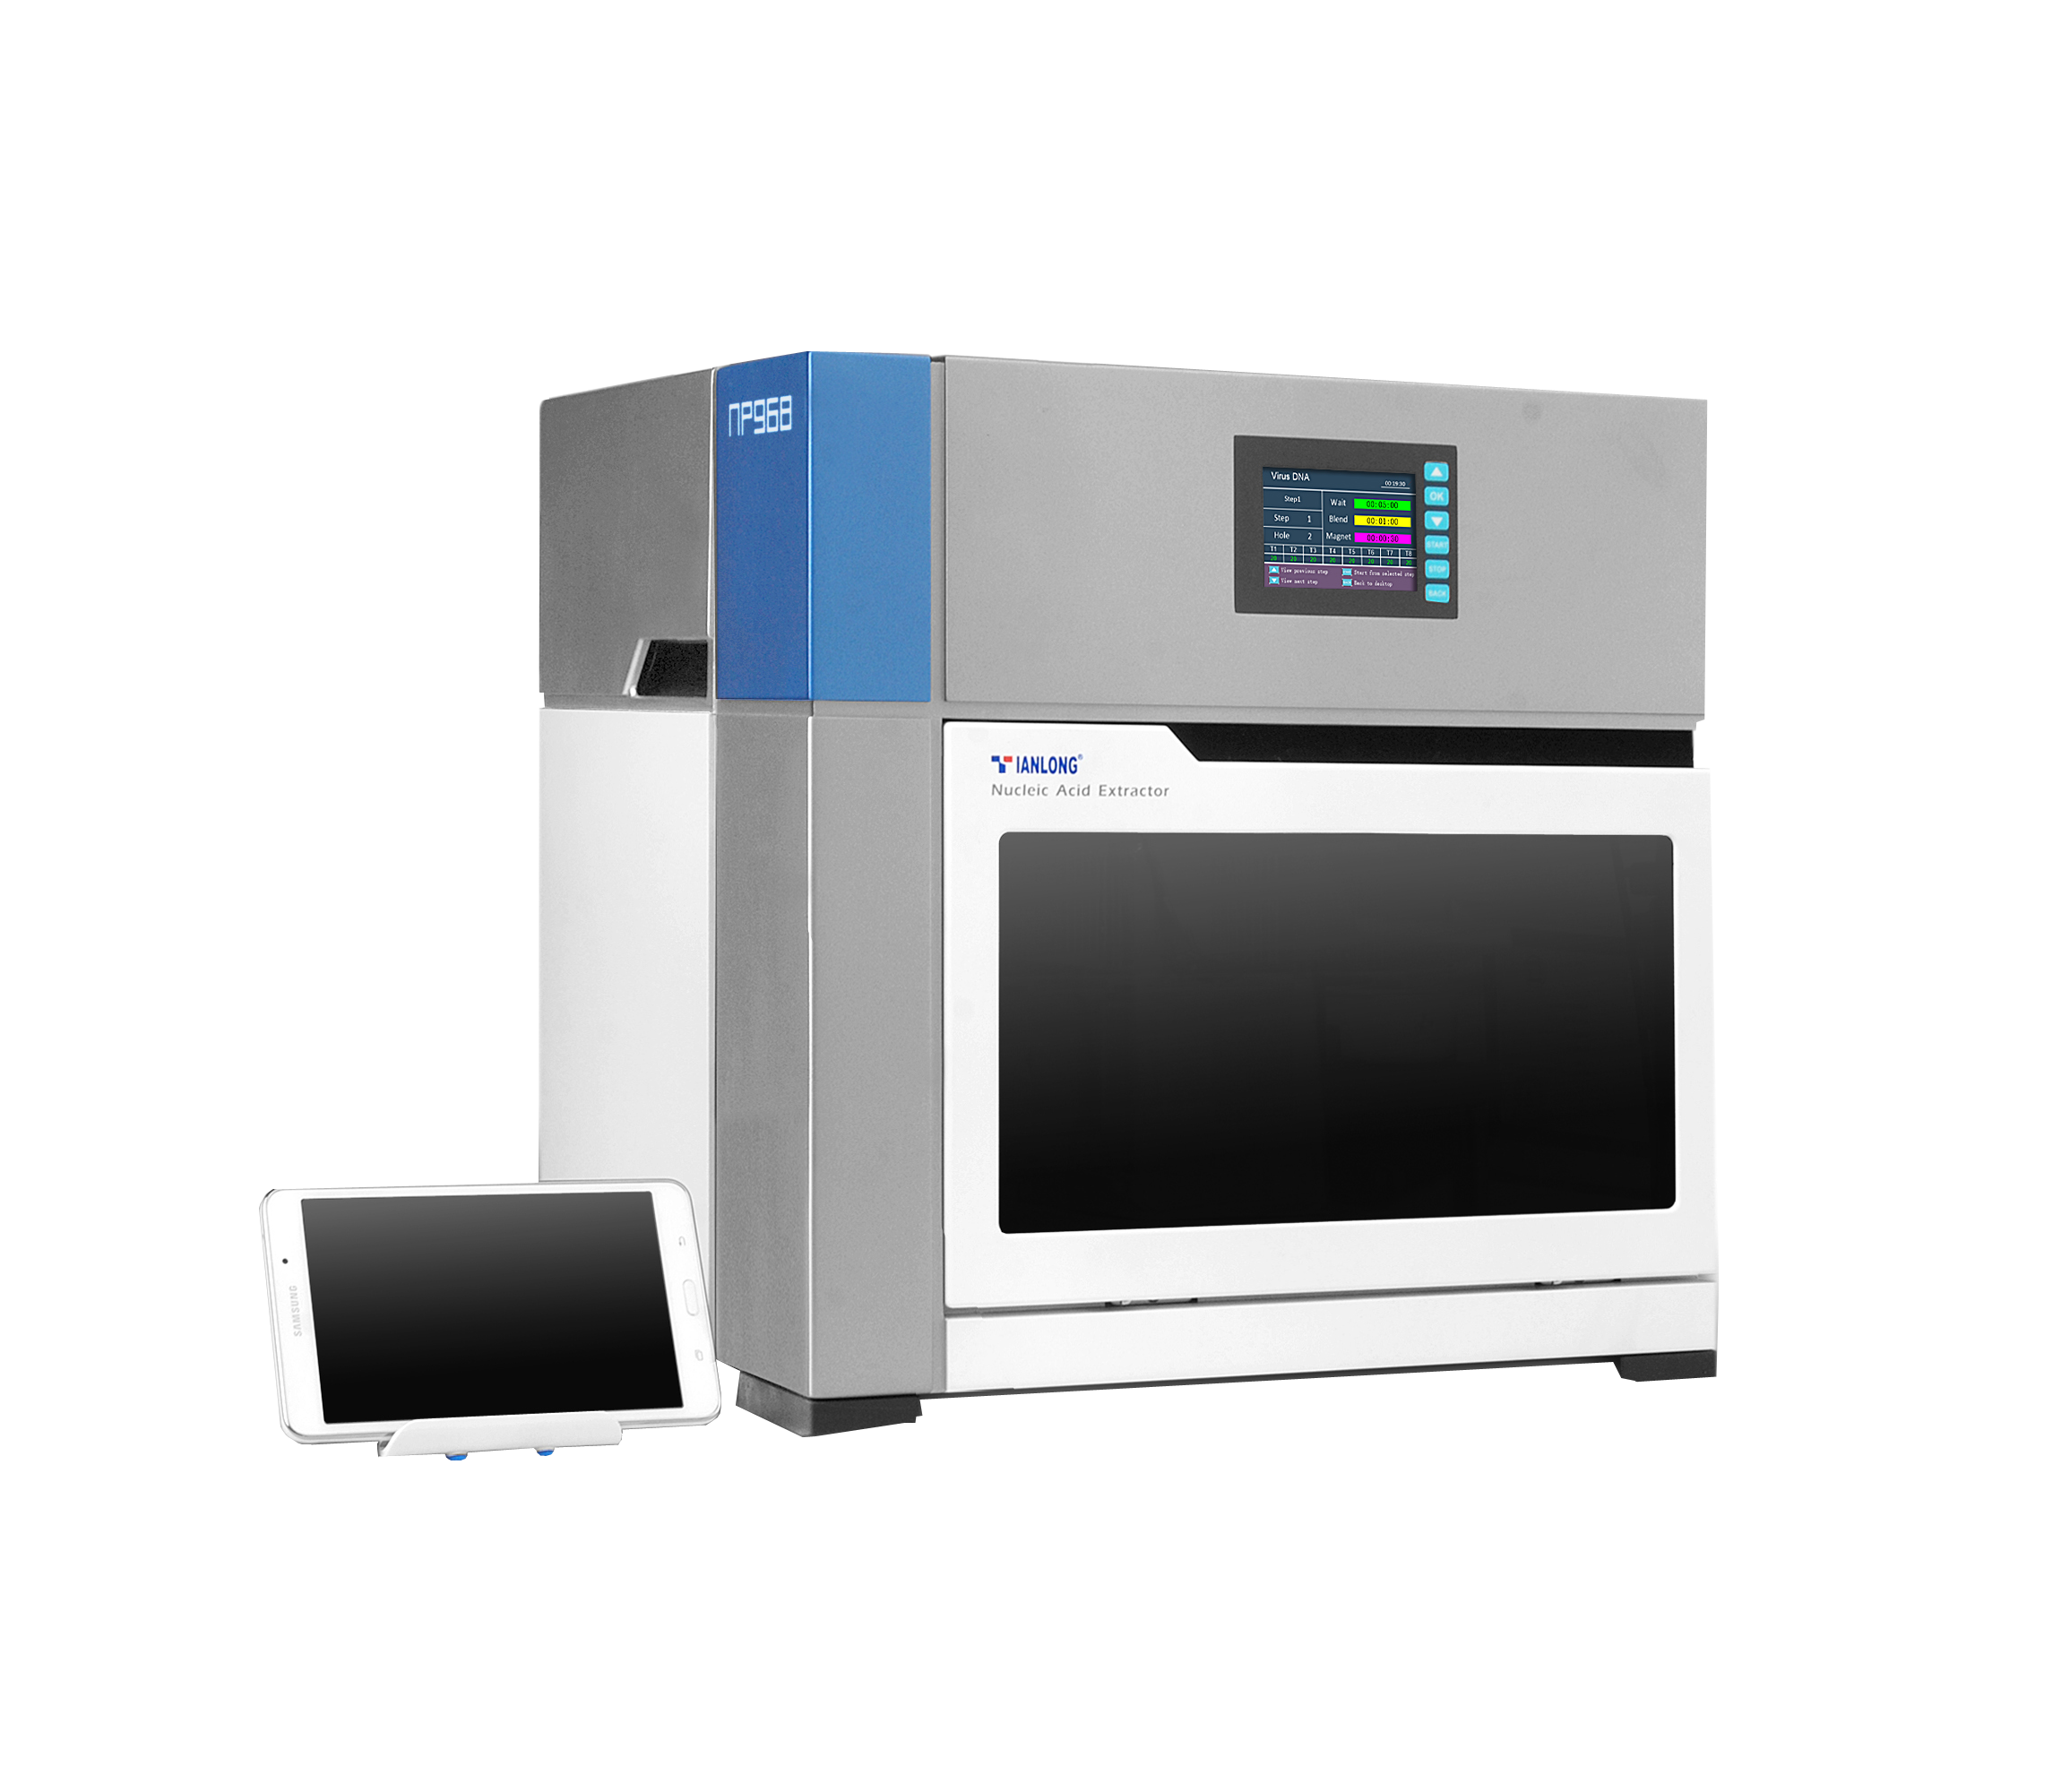 Nucleic Acid Extractor NP968-S_2